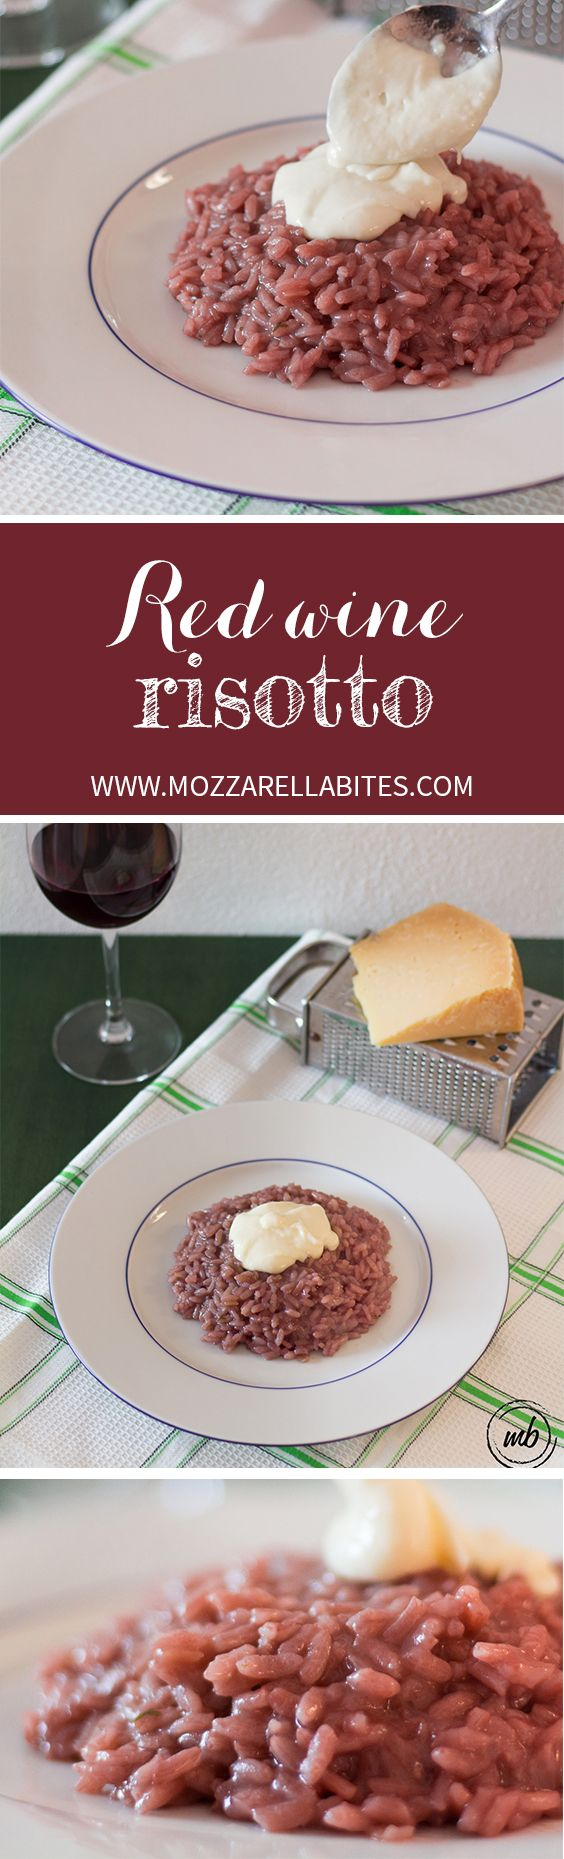 Try this red wine risotto with a gorgeous pecorino cheese cream!  Ingredients: Rice, 180gr. (I used Carnaroli rice) Red wine, 2 cups (2 glasses) Onion, 1 small Extravirgin olive oil, 2 tbsp Vegetable stock, 3 to 4 cups.